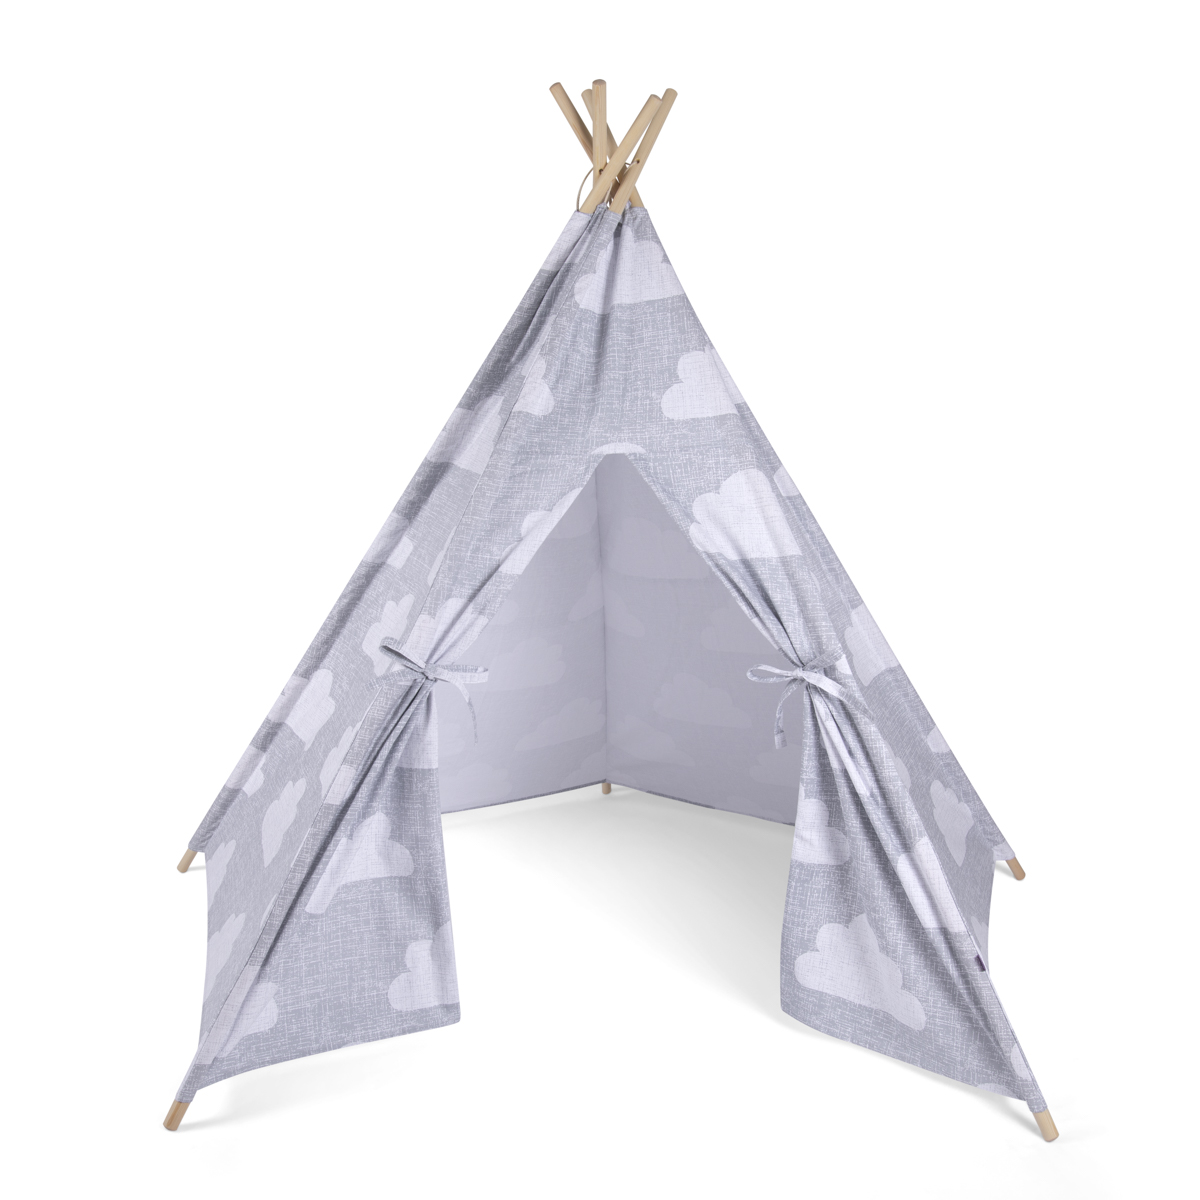 Snuz Kids Teepee Play Tent - Cloud